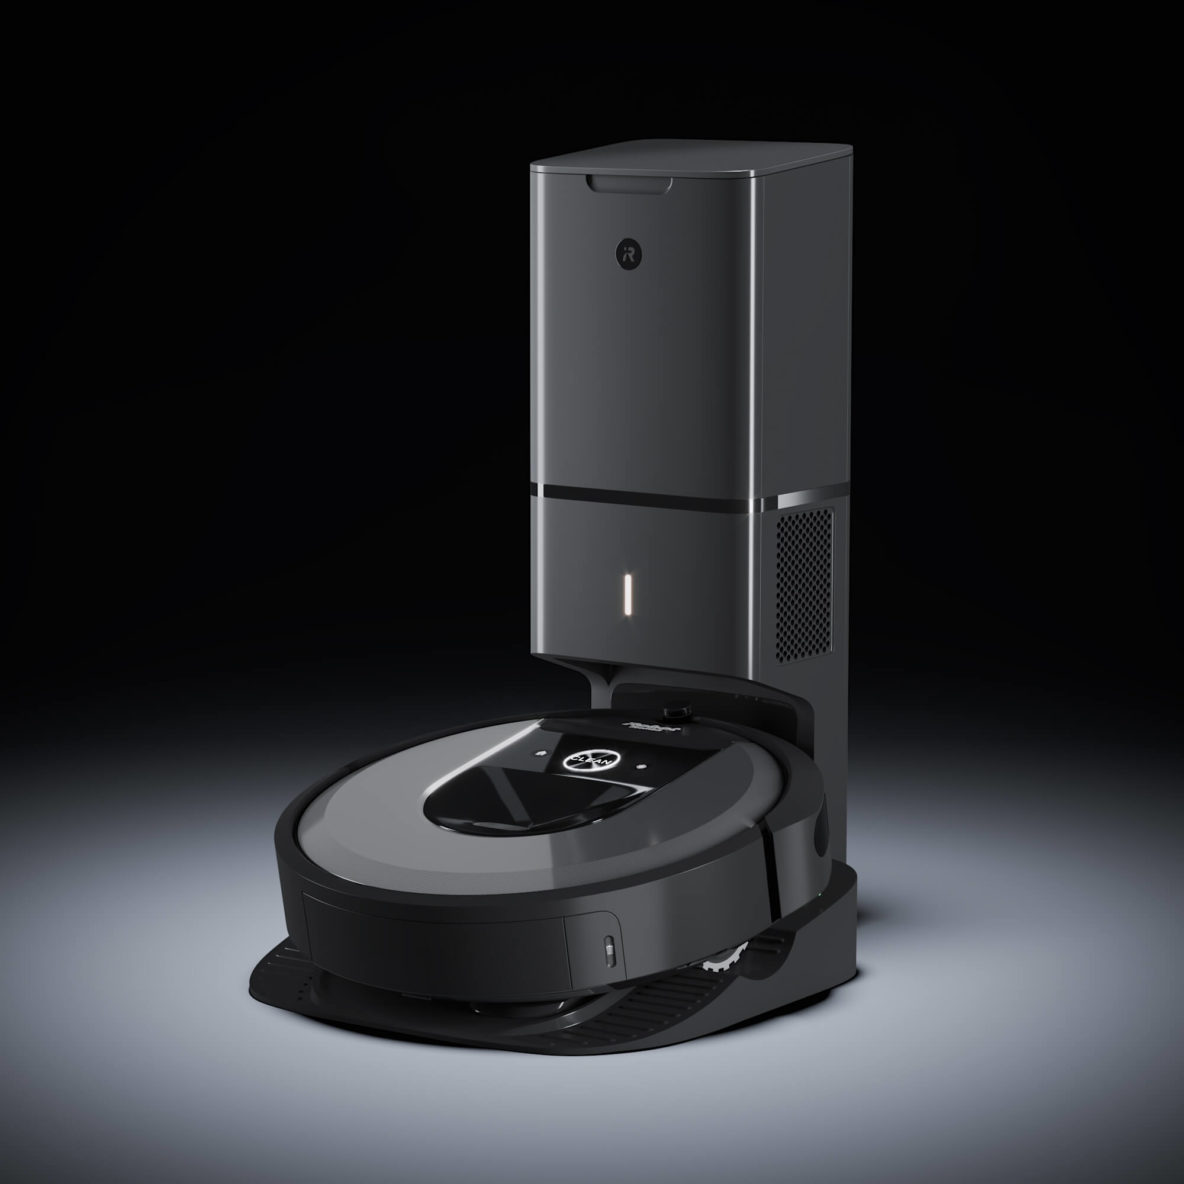 Photorealistic 3D Modeling for a Robot Vacuum Cleaner